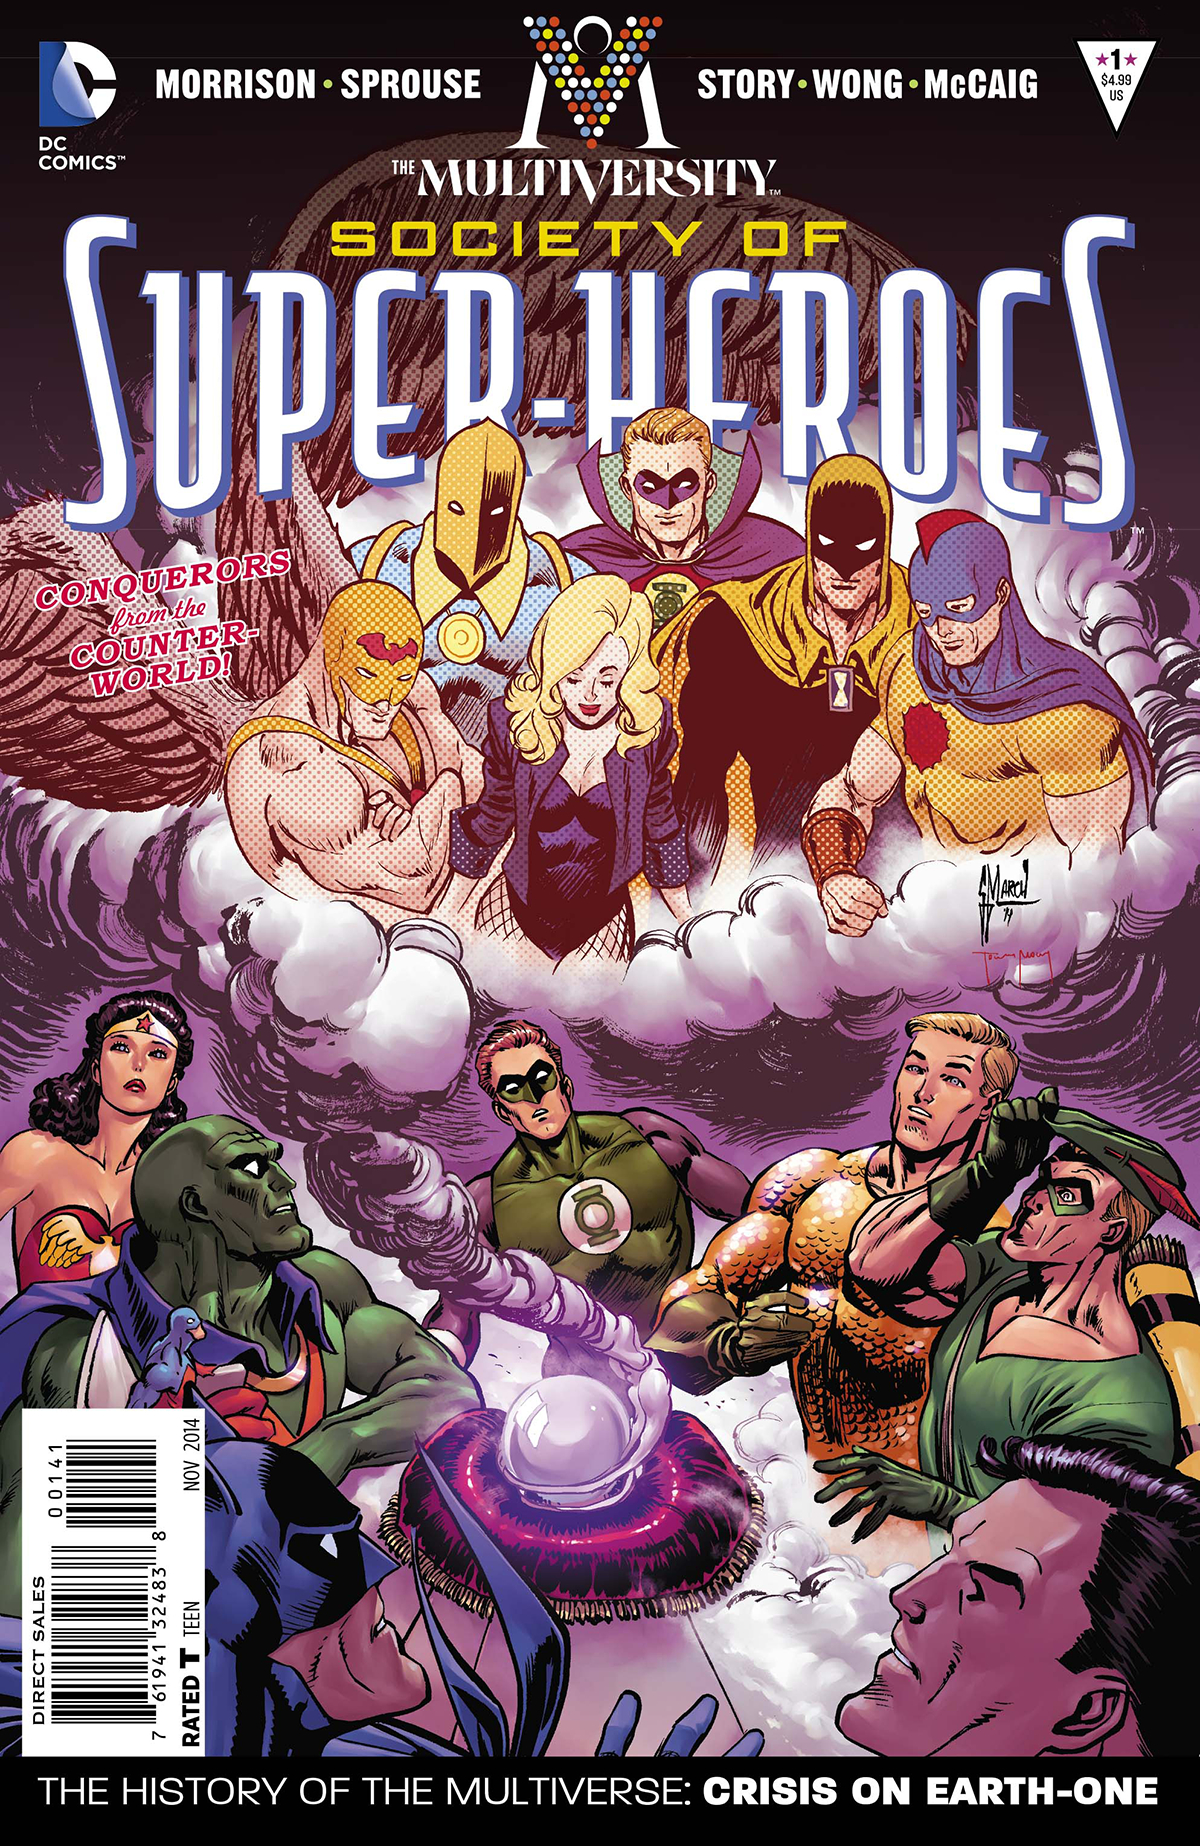 MULTIVERSITY THE SOCIETY OF SUPER-HEROES #1 MARCH VAR ED